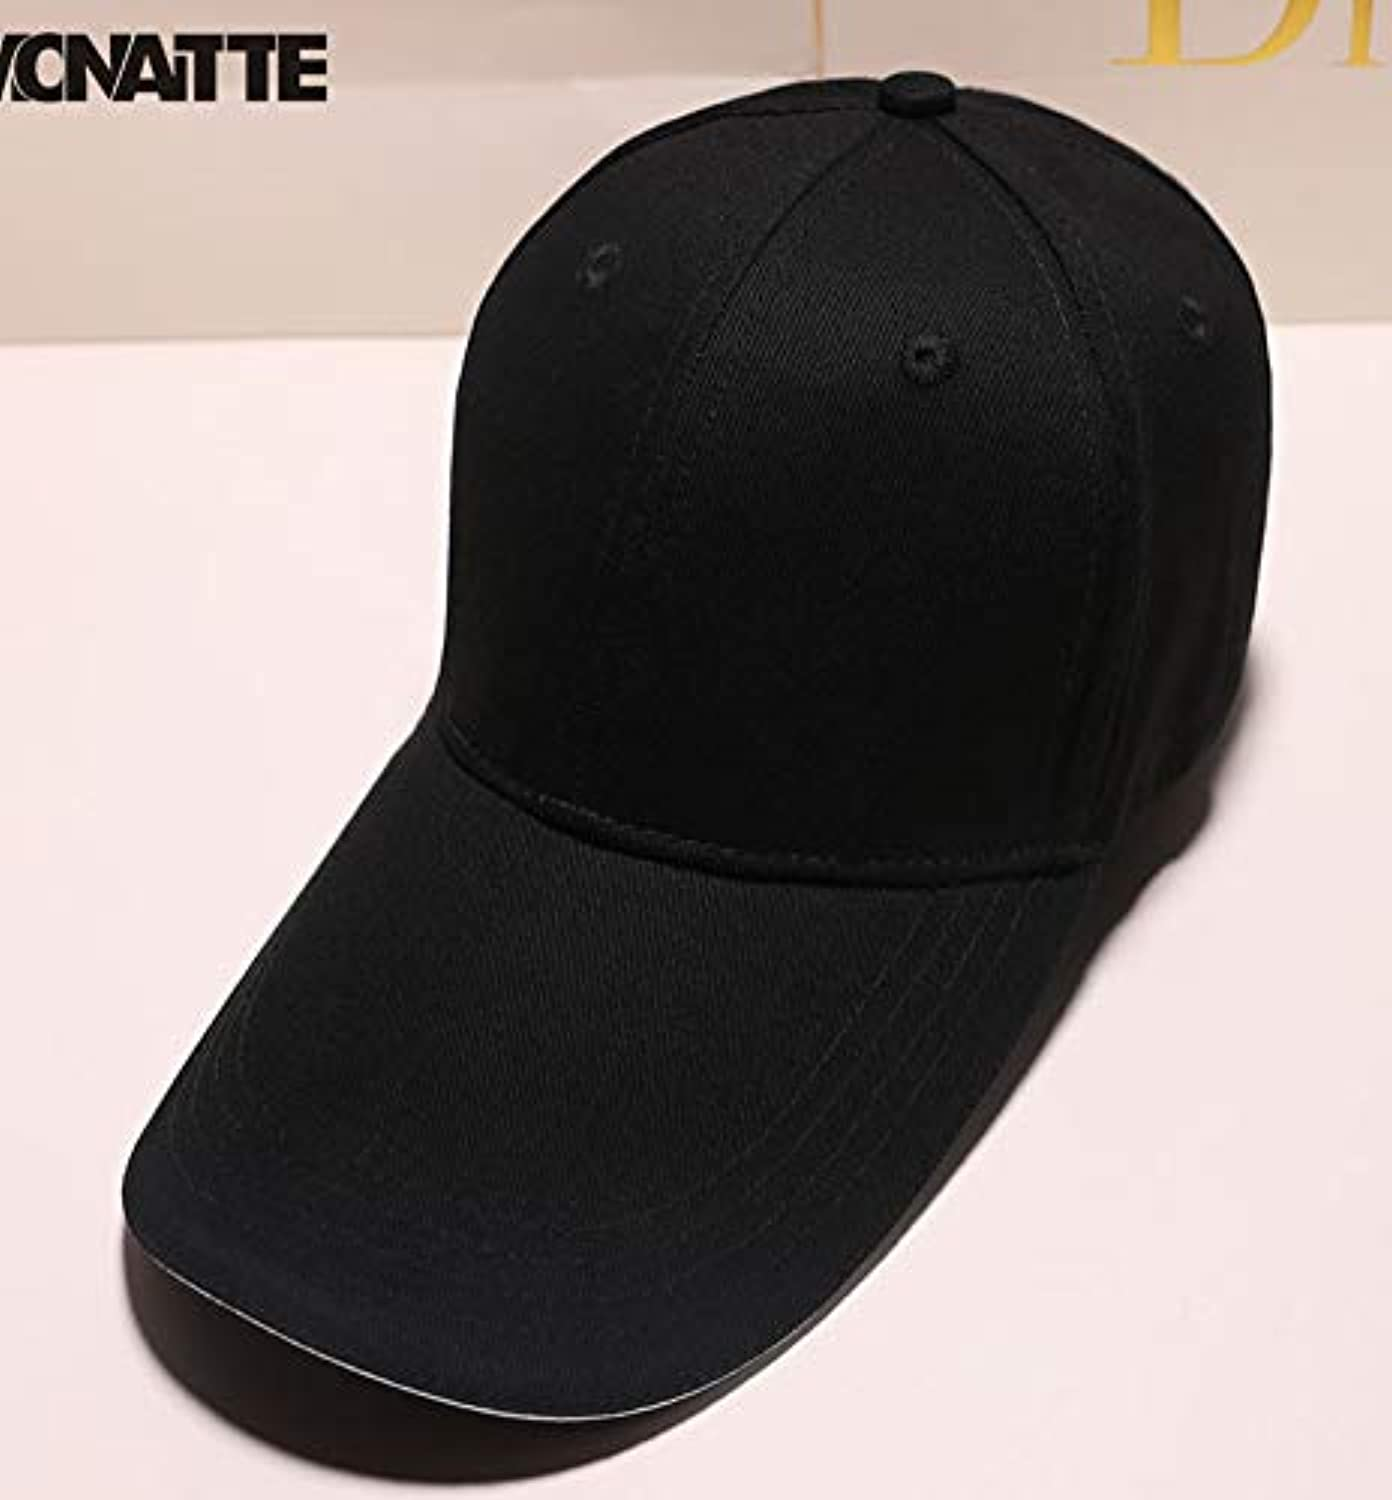 ZHAOSHOP Special new cap male Korean version of the black tide brand youth spring and summer baseball hat outdoor sports travel riding hiking leisure solid color body